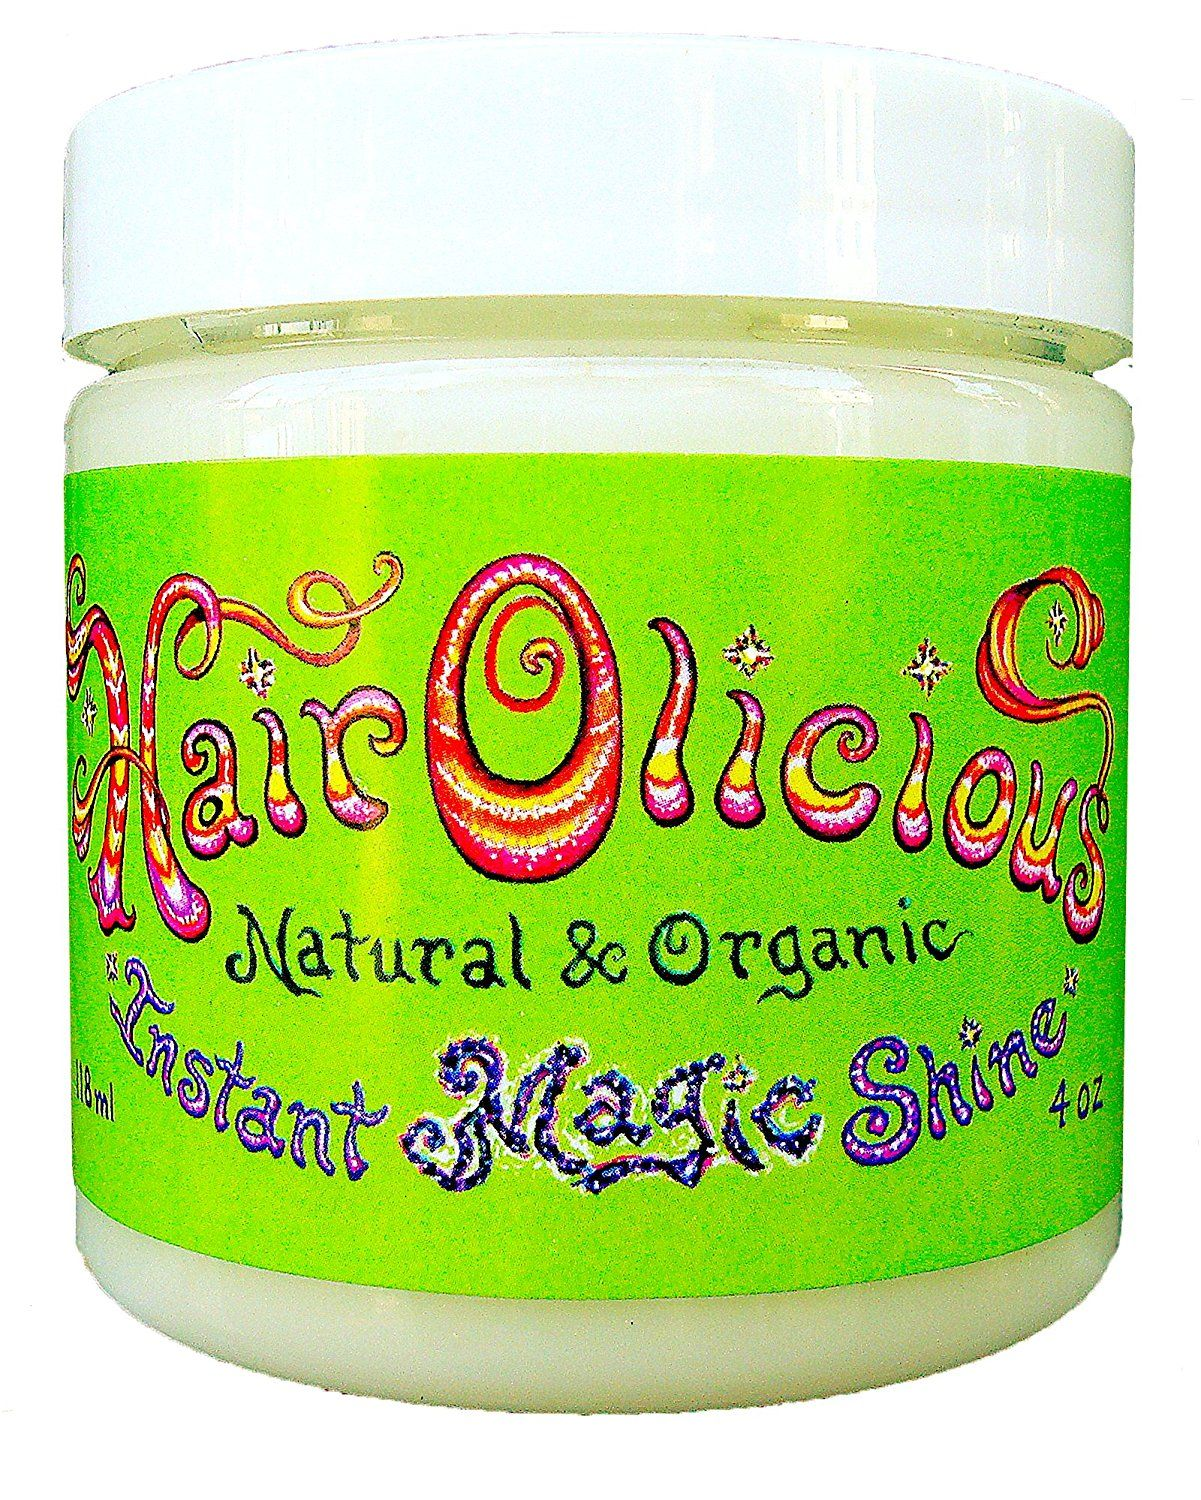 Hairolicious Natural And Organic Leave In Conditioner For More